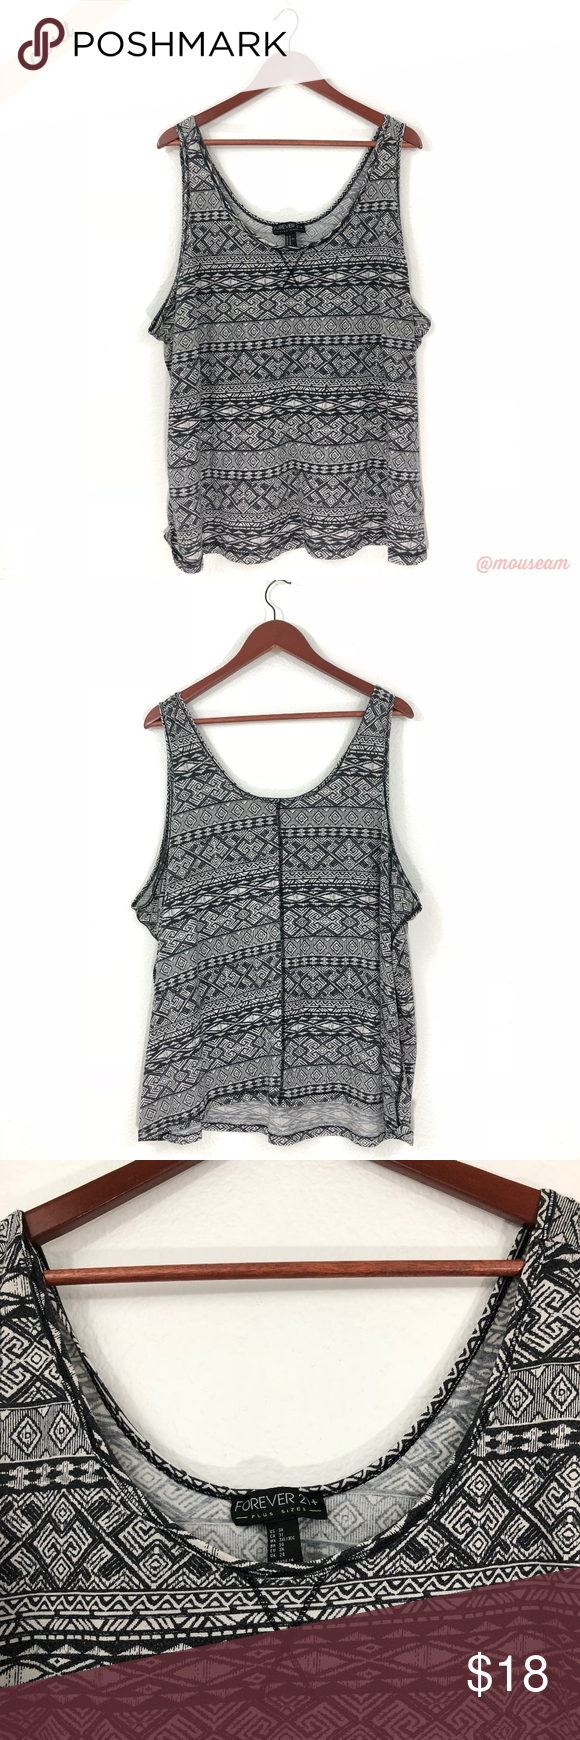 2b3898bf796  Forever 21+  Black   White Tribal Print Tank Top Forever 21 Plus -